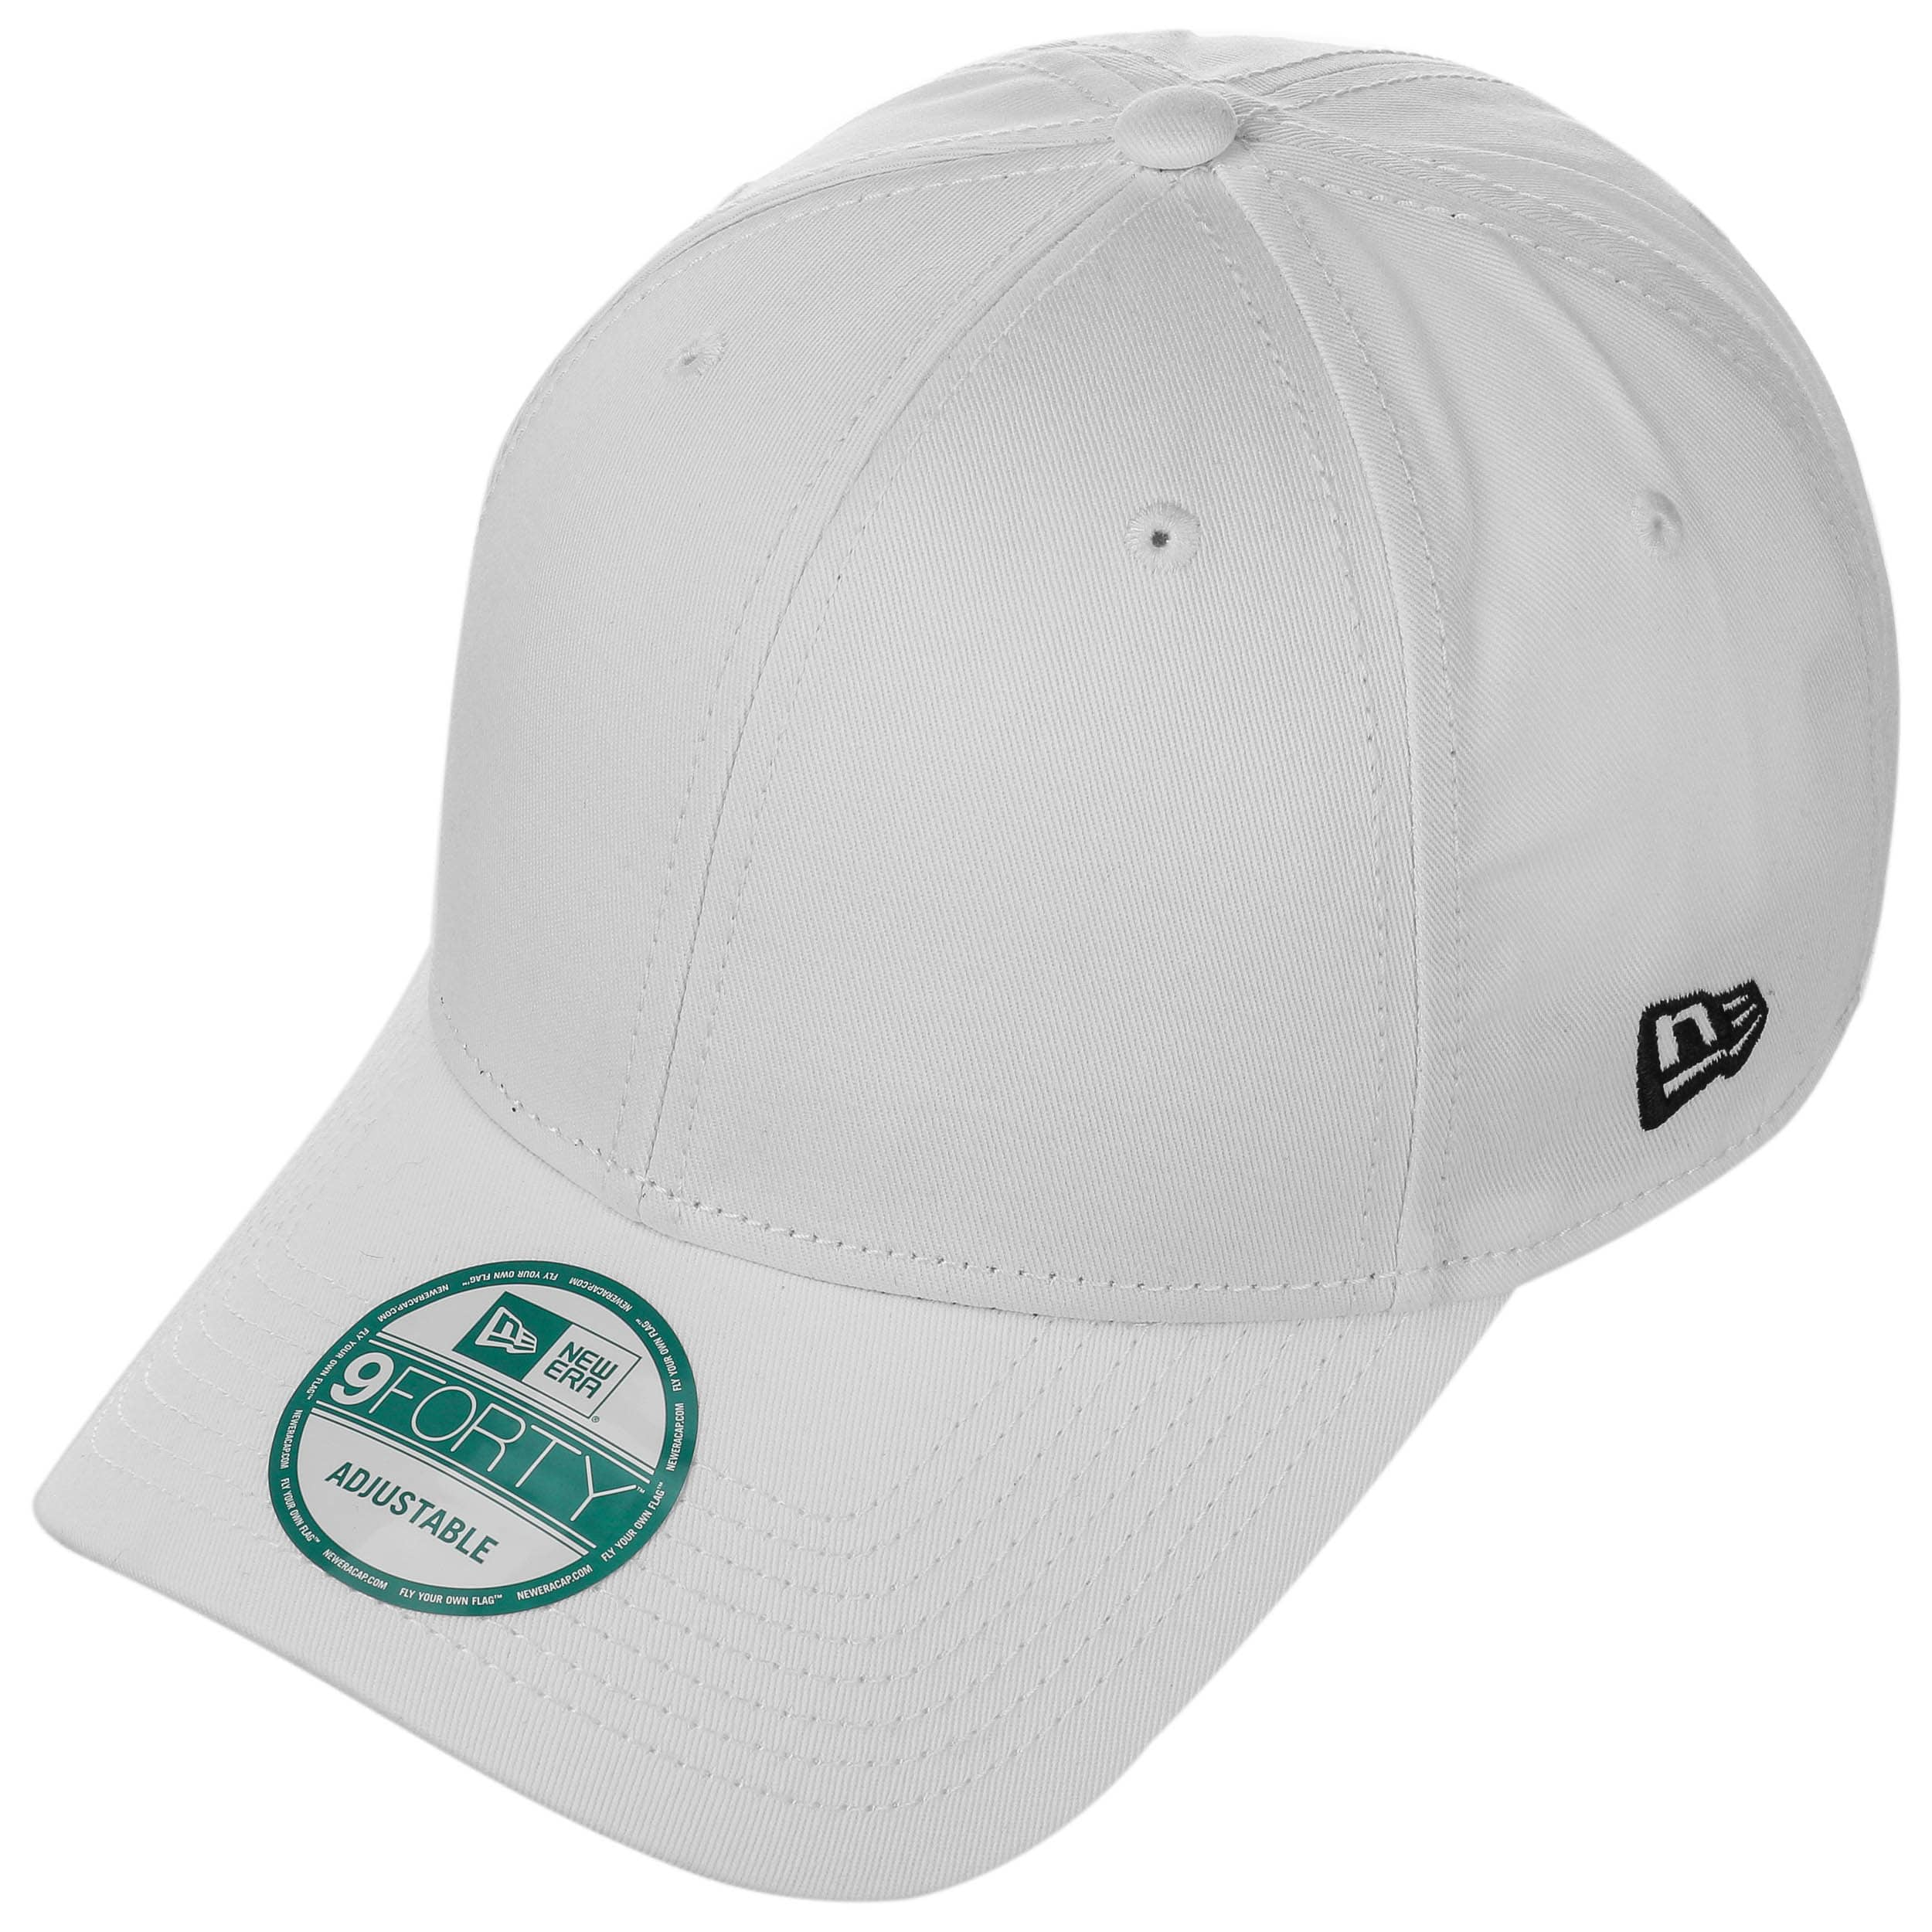 Gorra 9Forty Basic Strapback by New Era - Gorras - sombreroshop.es f7a8f3a9433